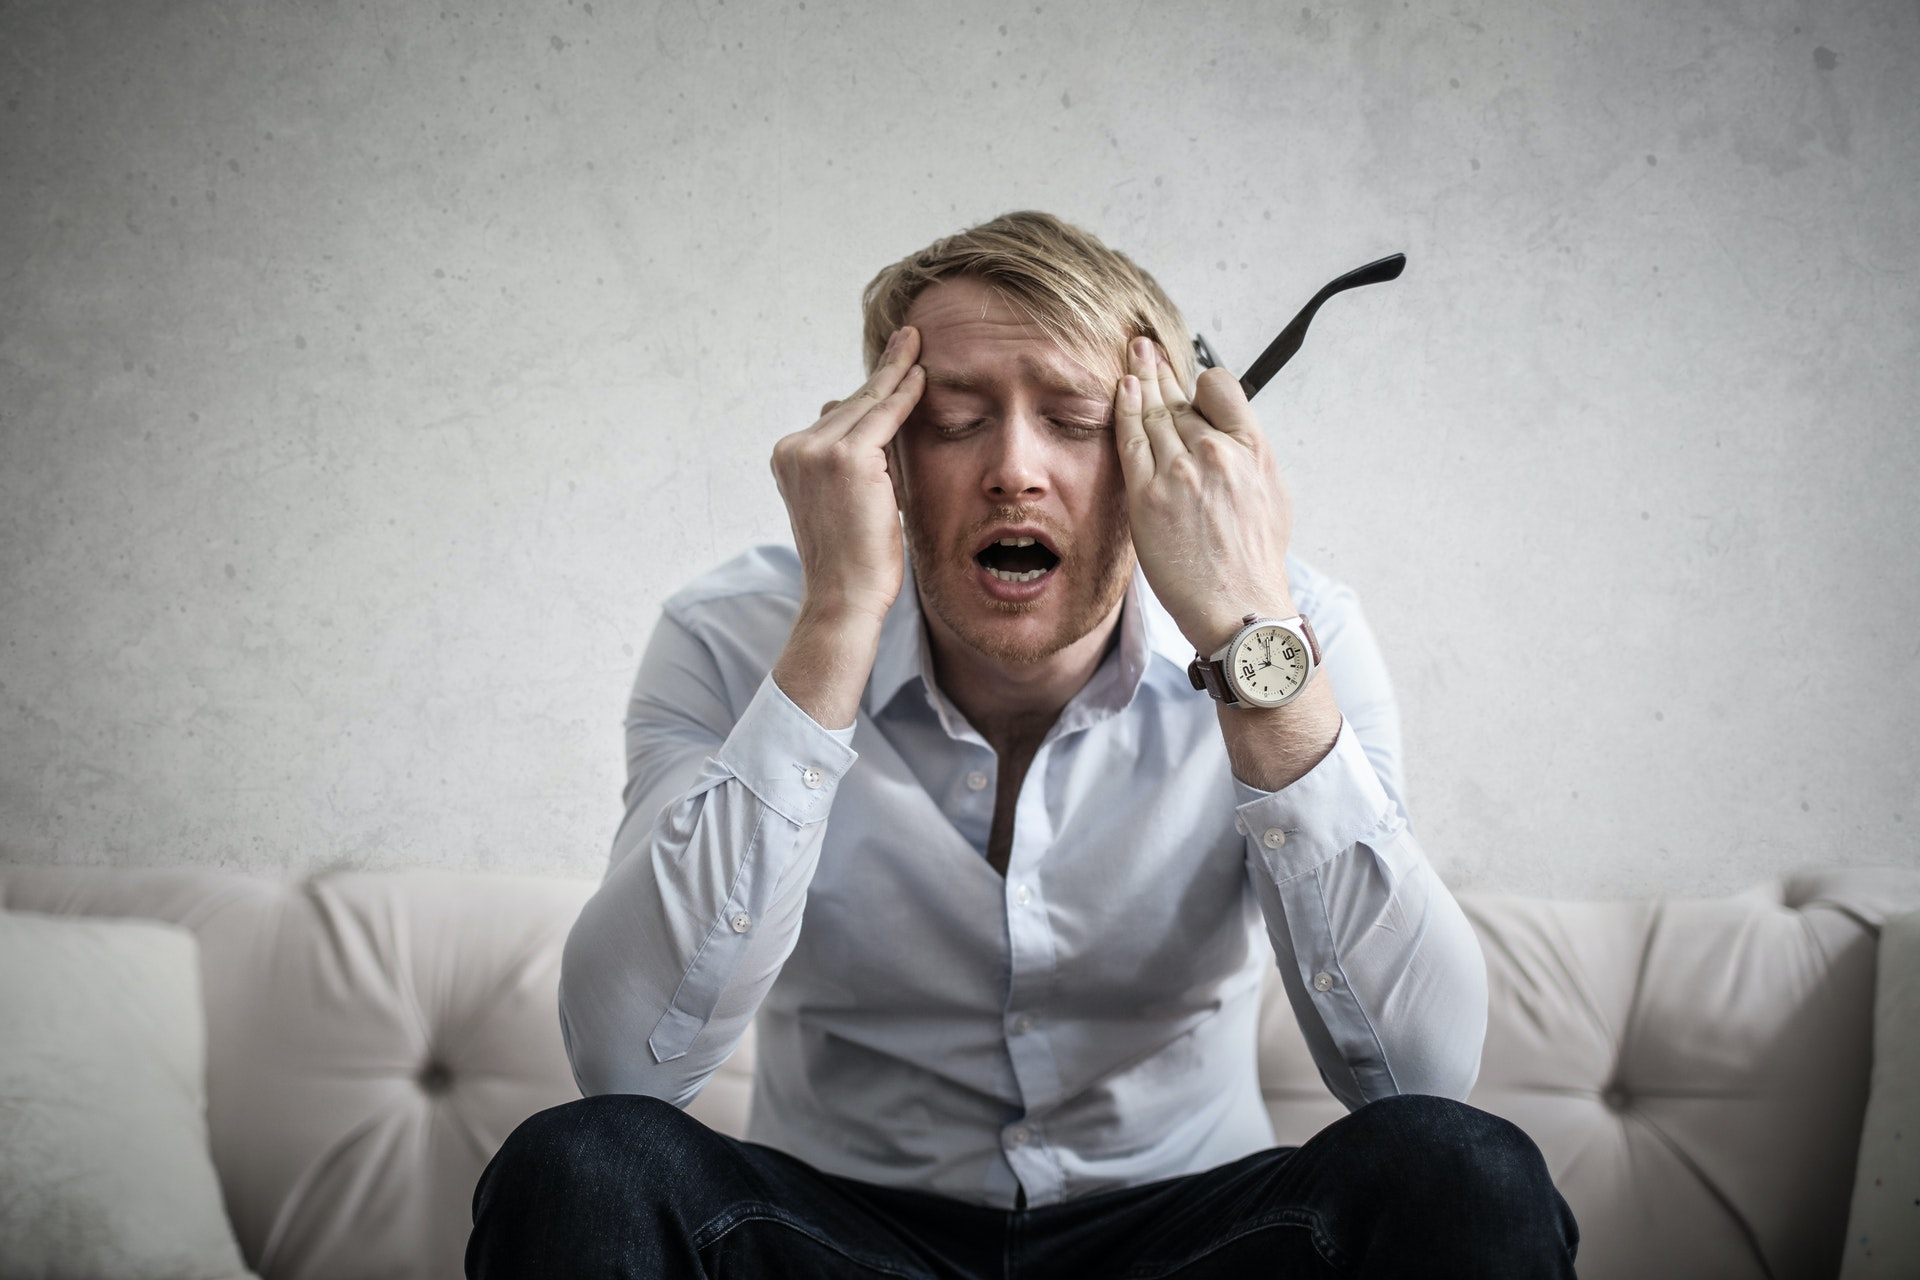 The Effects of Chronic Stress